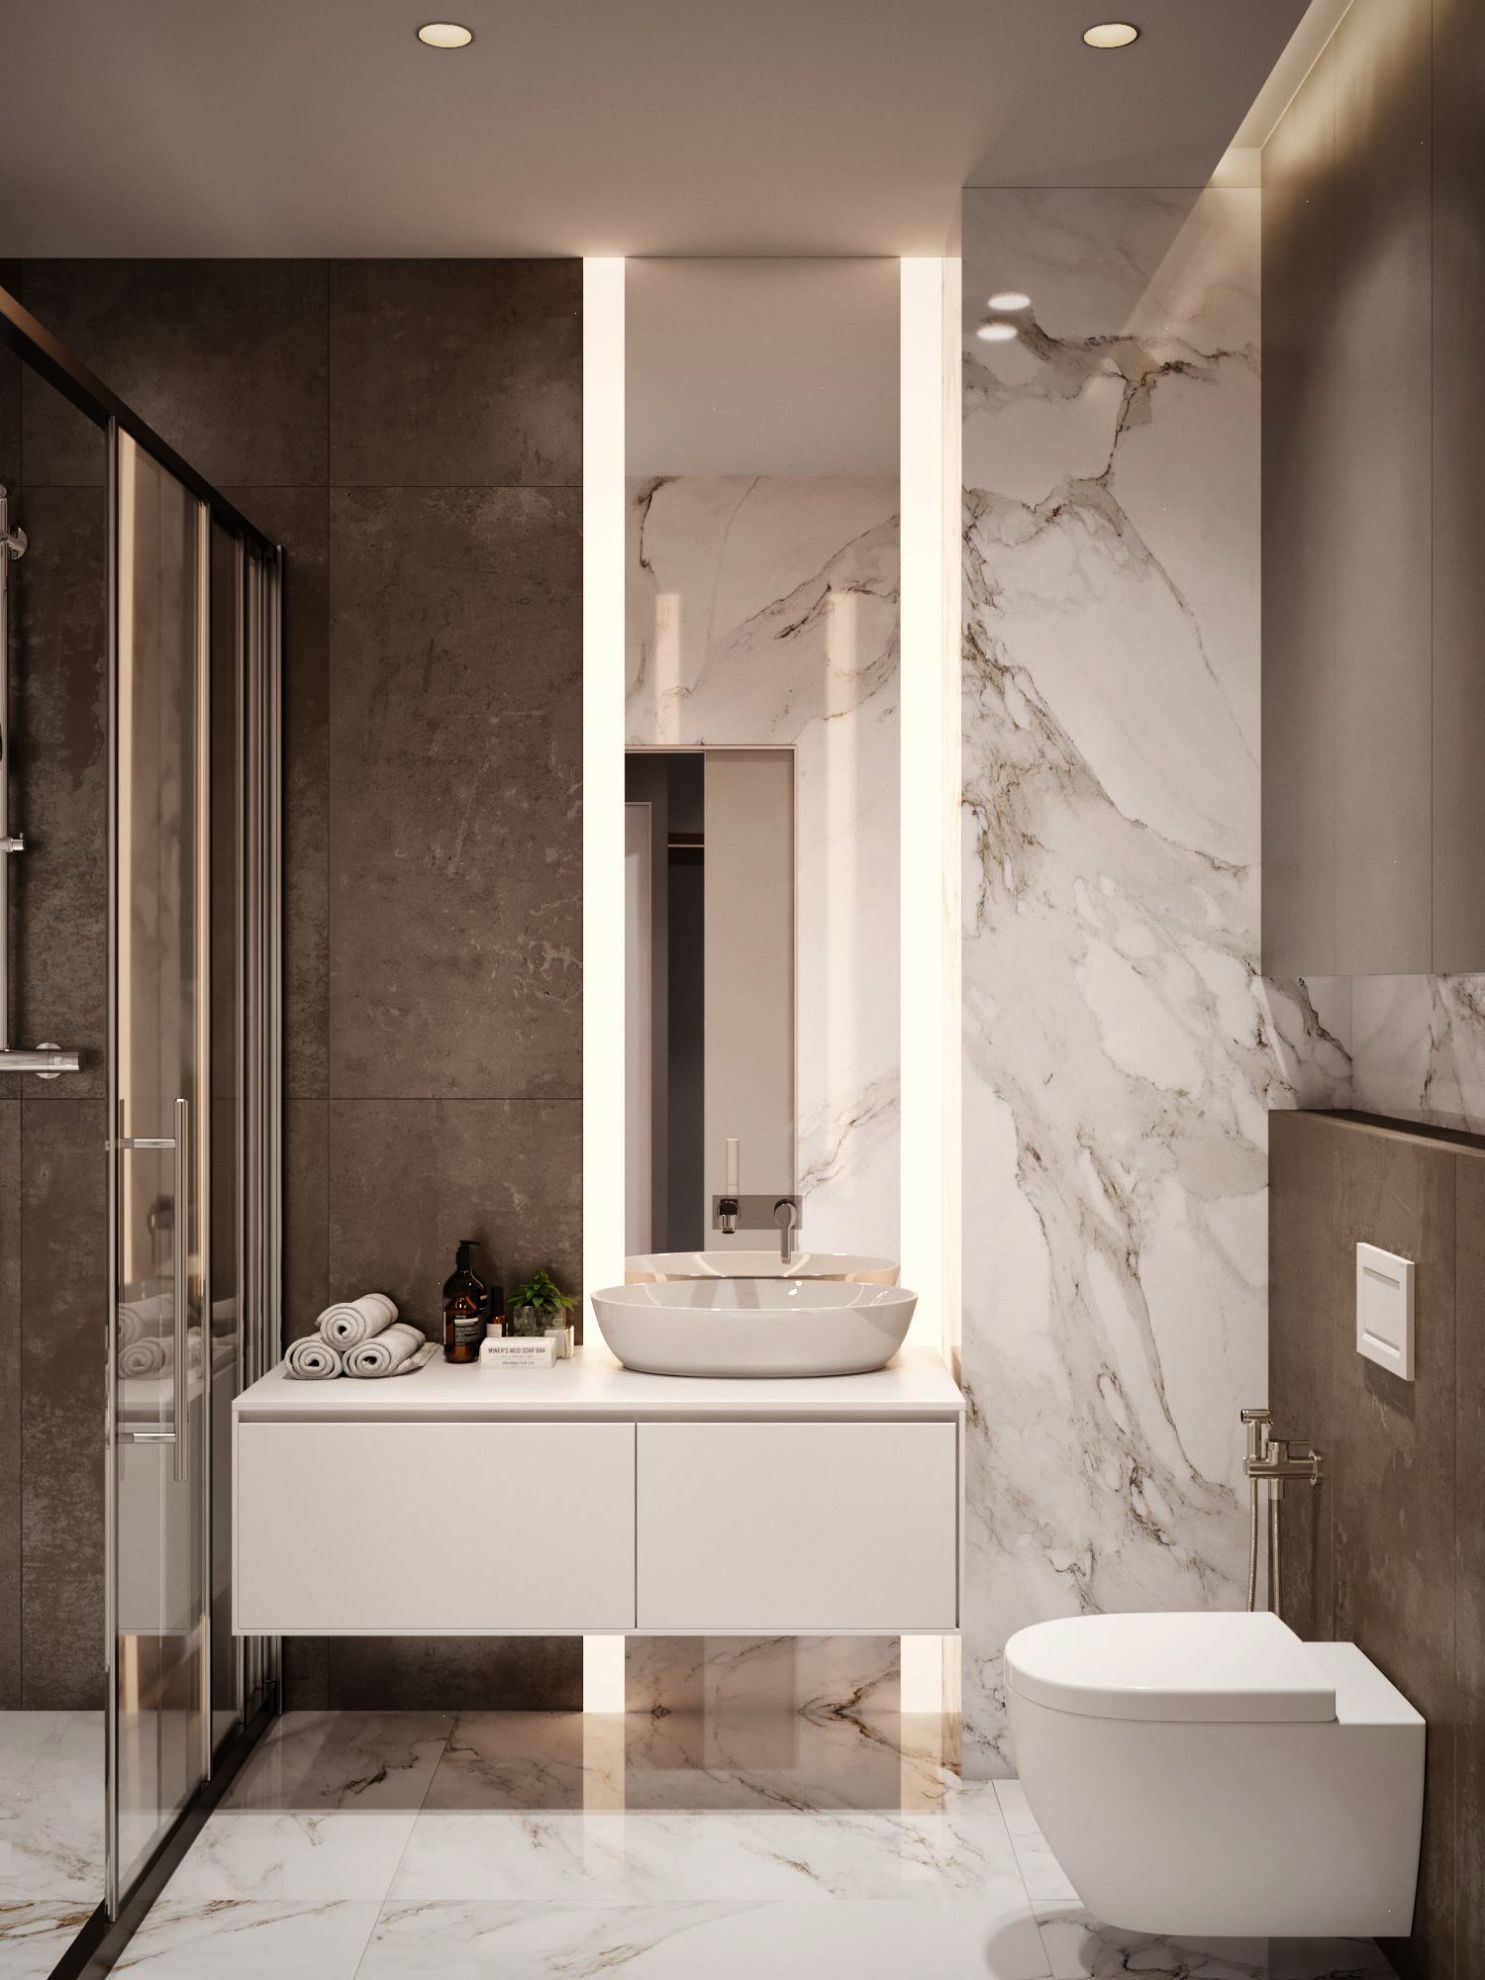 Terrific > Elegant Bathroom Designs 2013 xoxo | Modernes ...